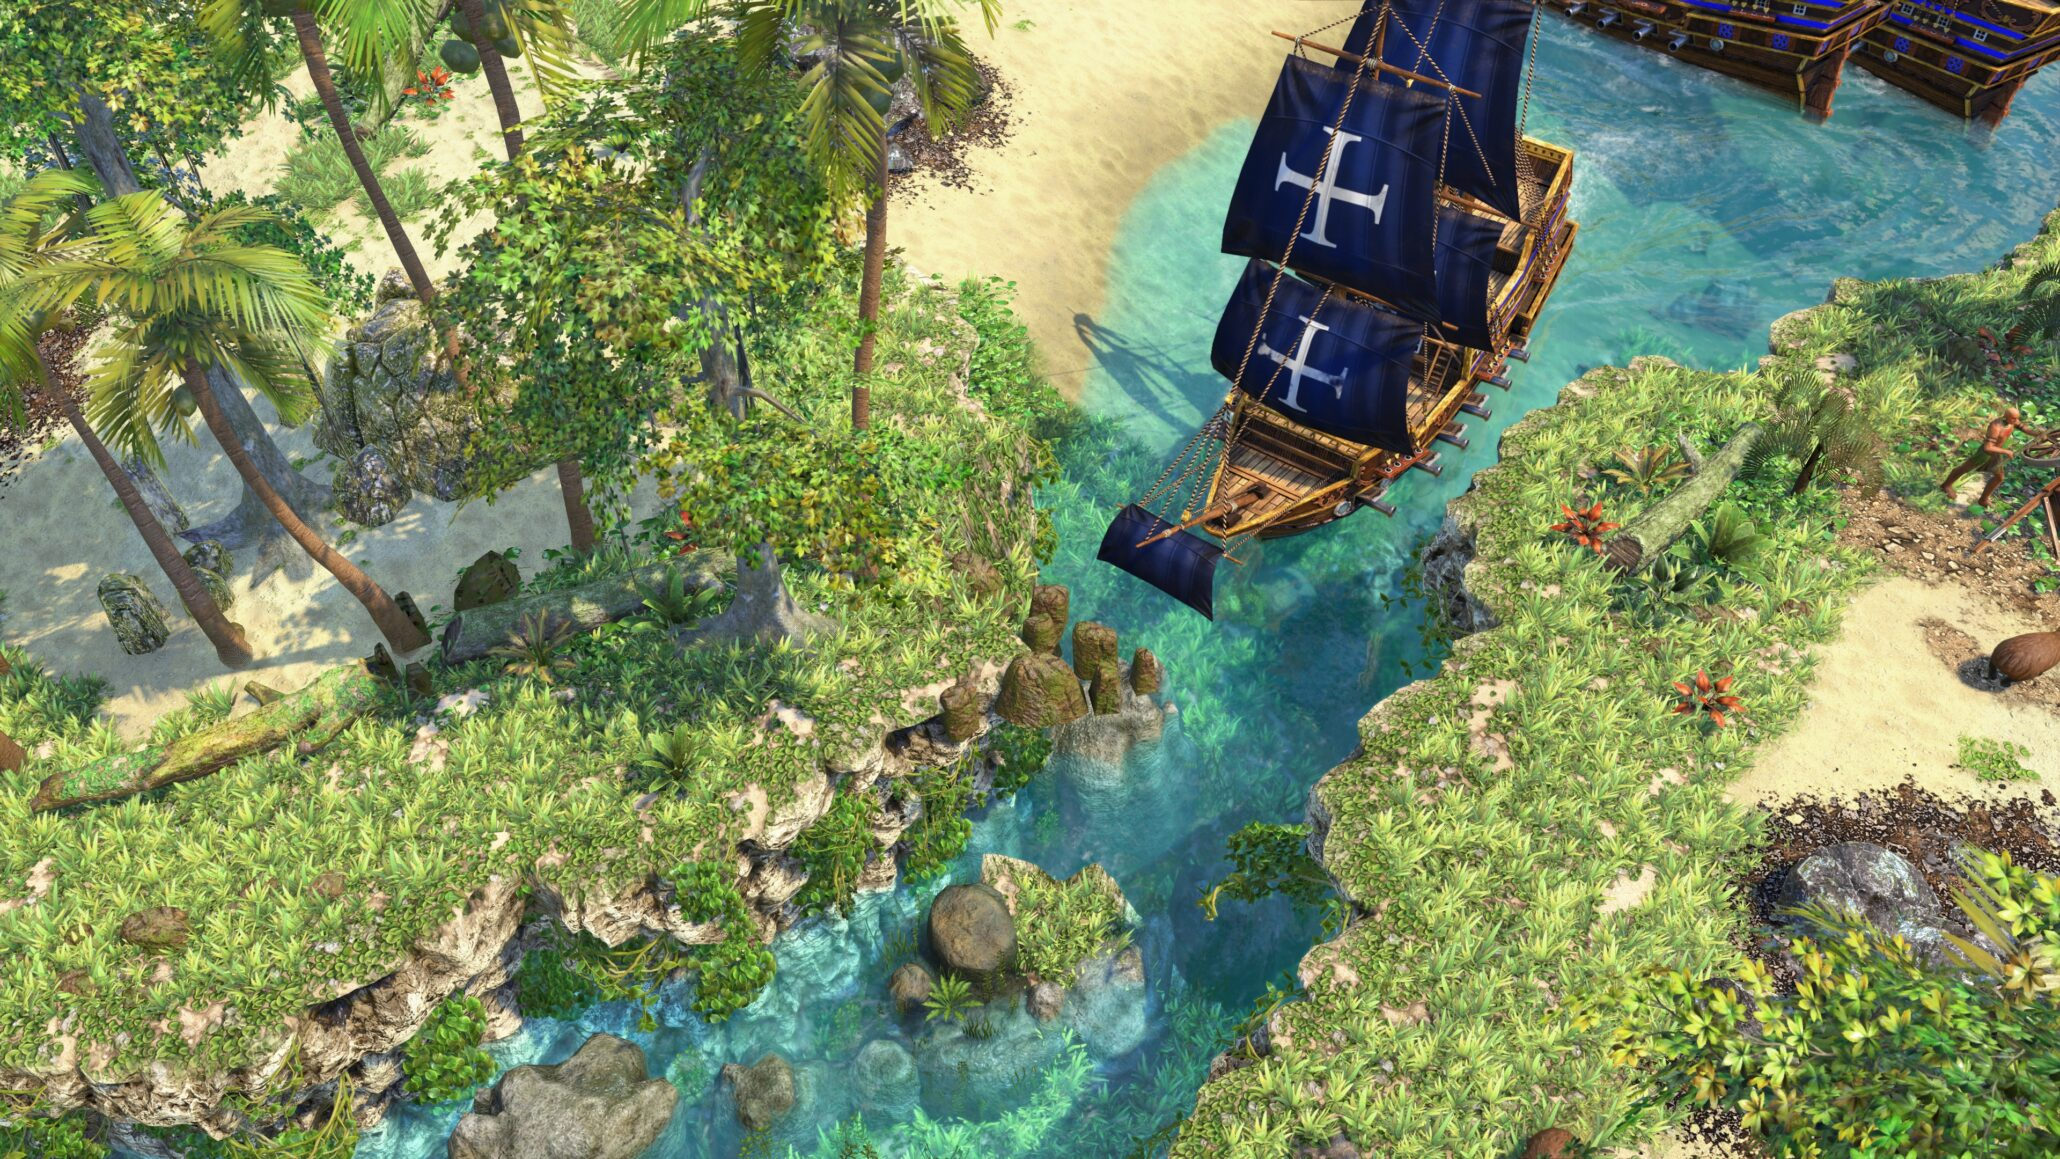 age-of-empires-iii-definitive-edition-review-04-asset-12